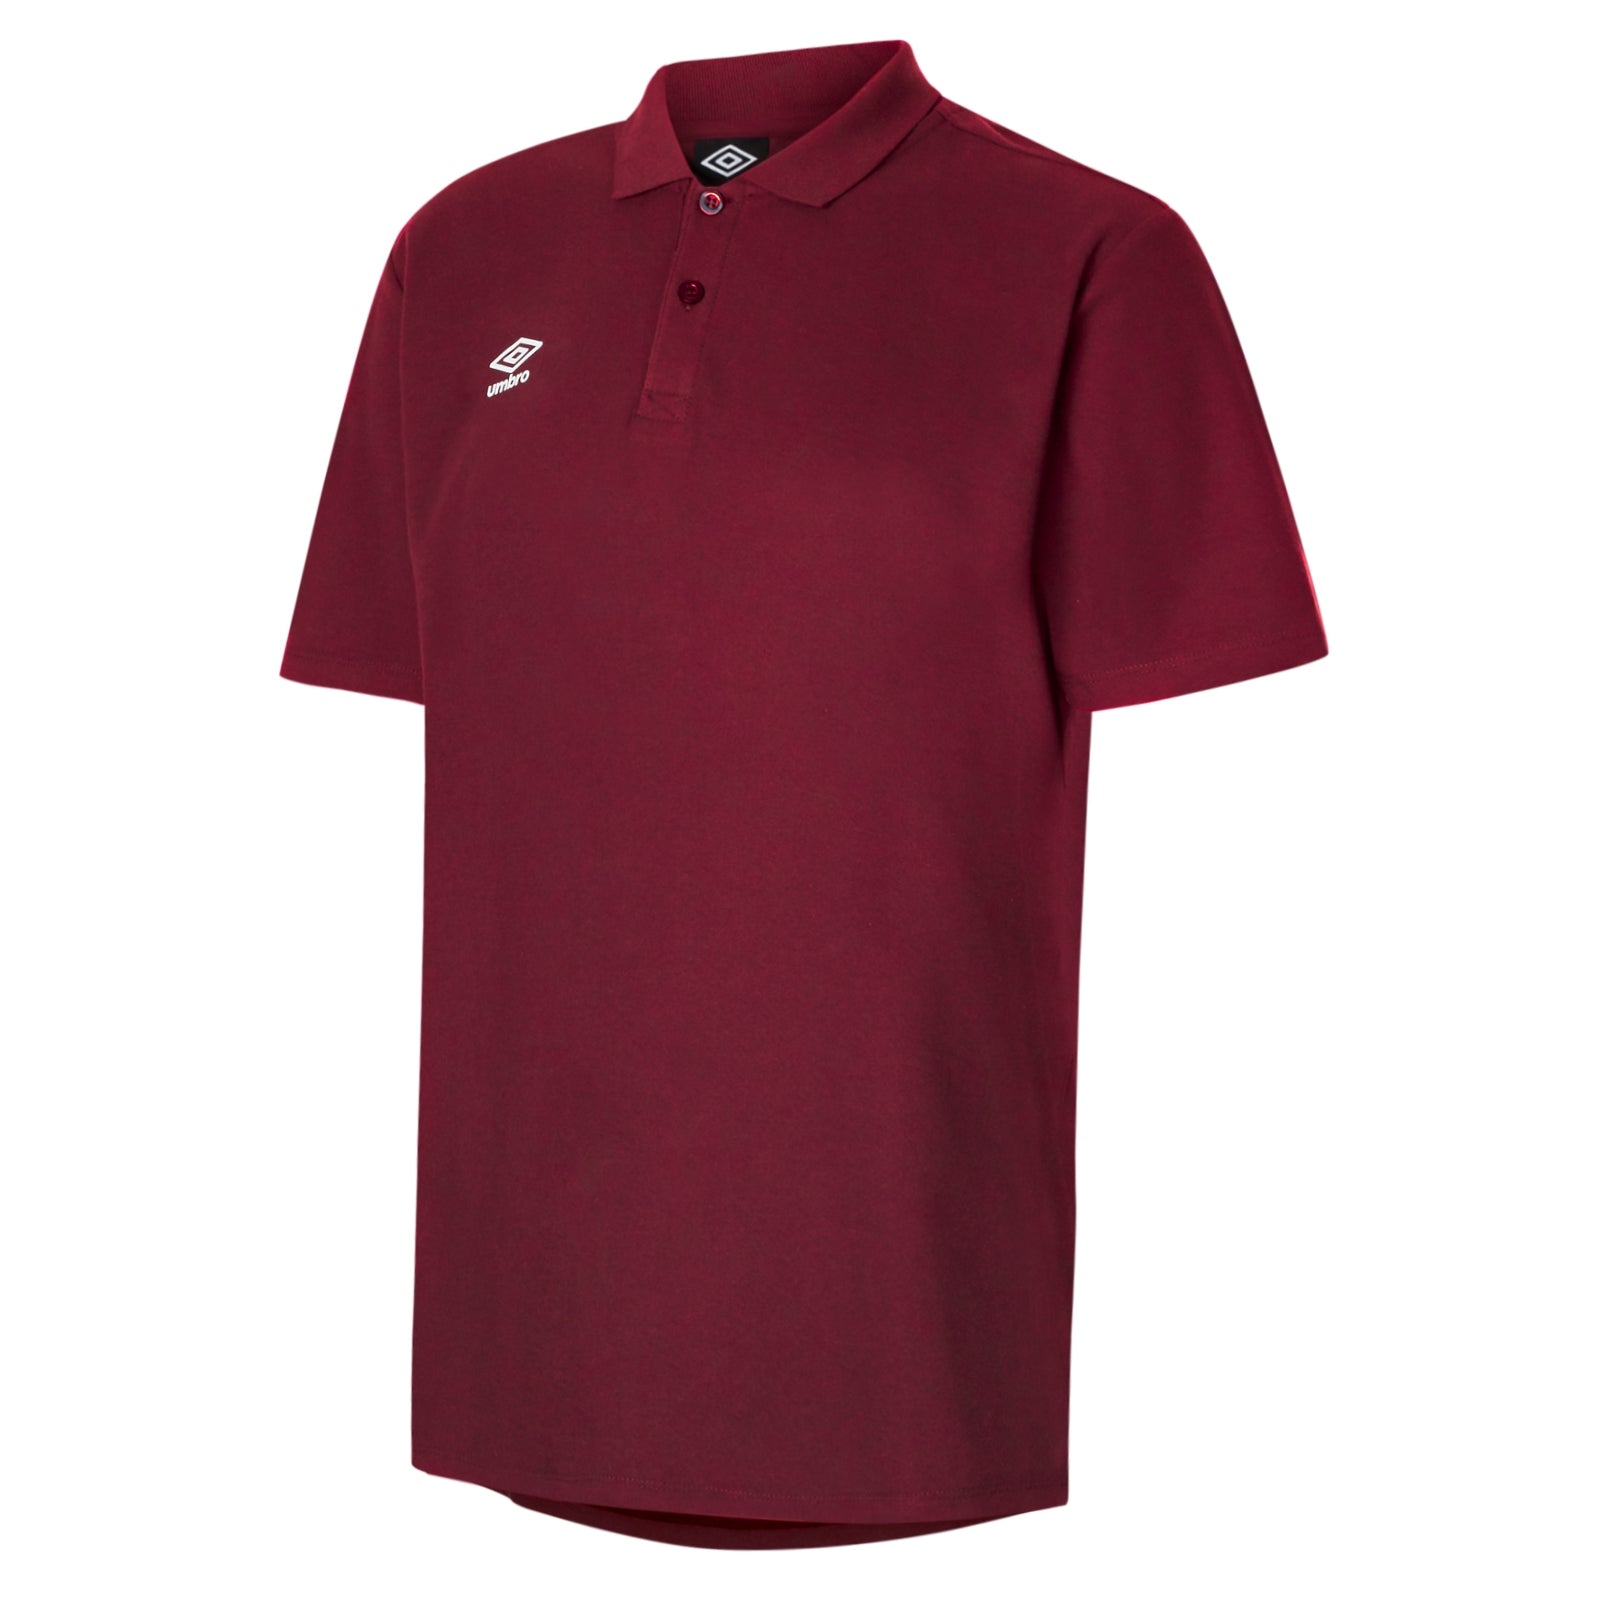 Umbro Club Essential Polo in new claret with white Umbro Diamond logo on right chest